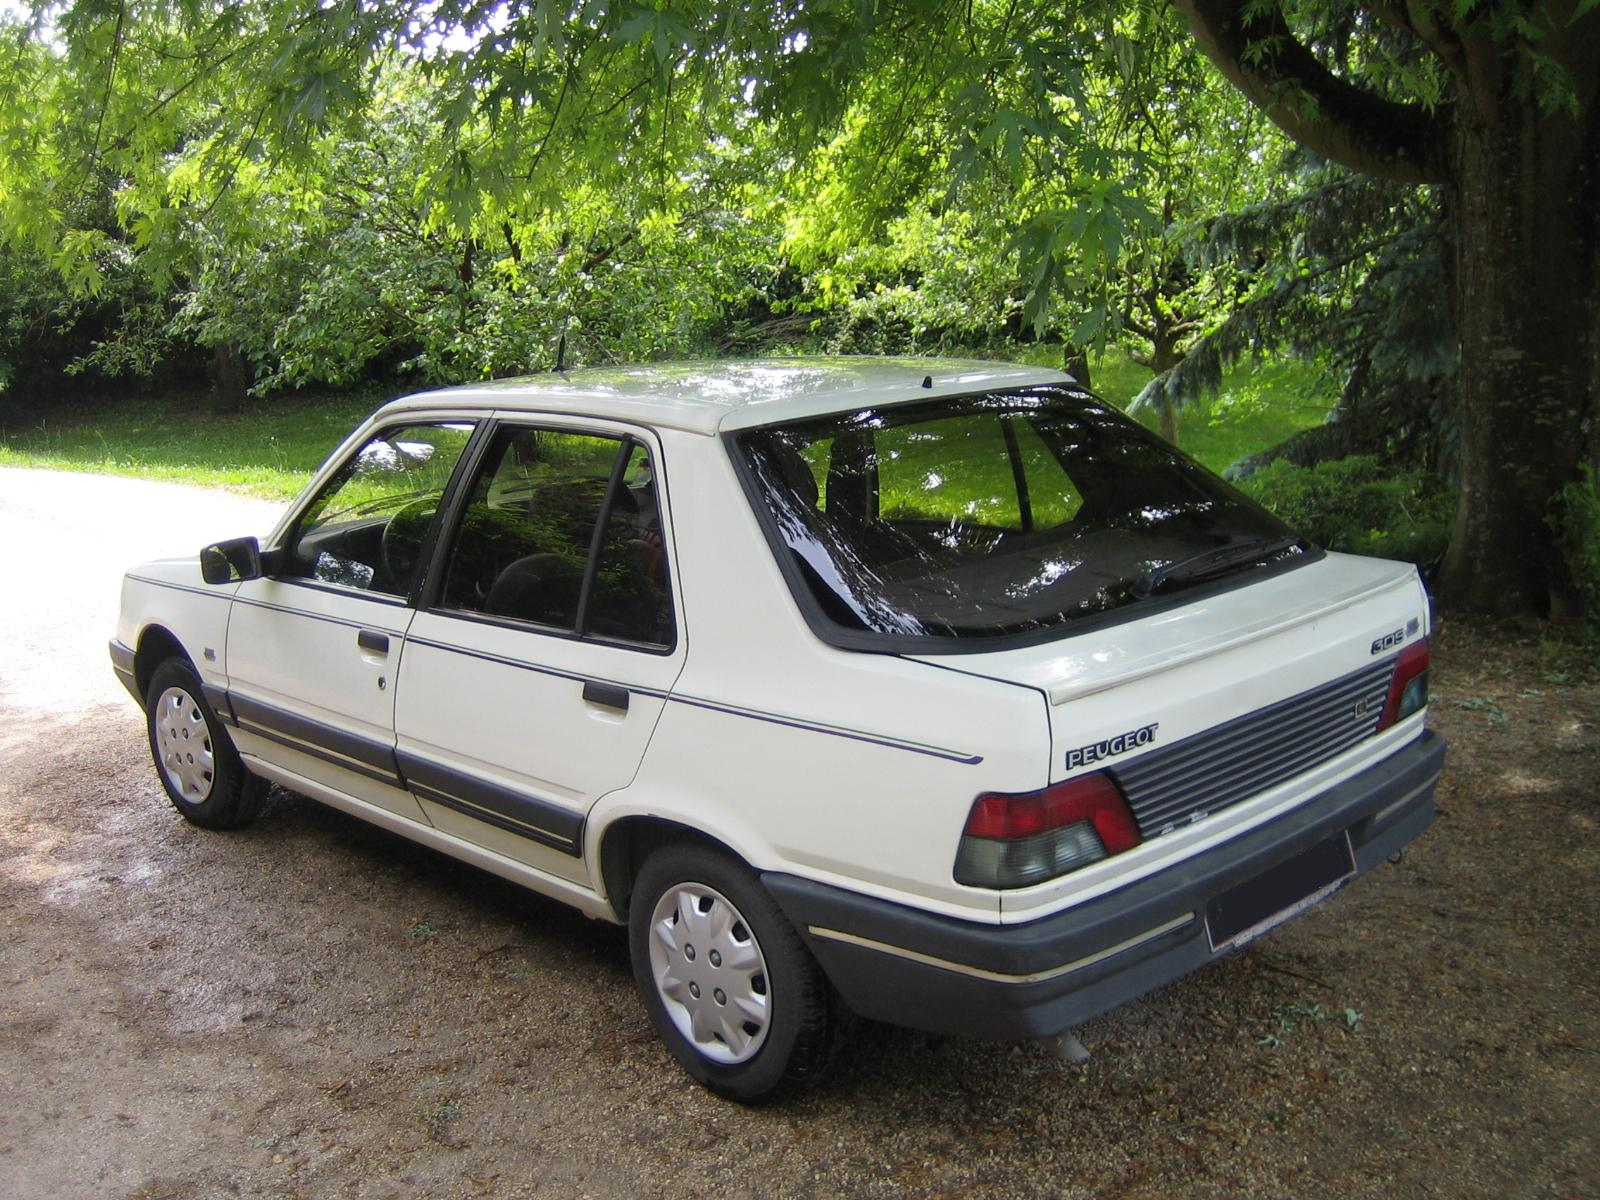 File:Peugeot 309 Best Line Rear Left.JPG